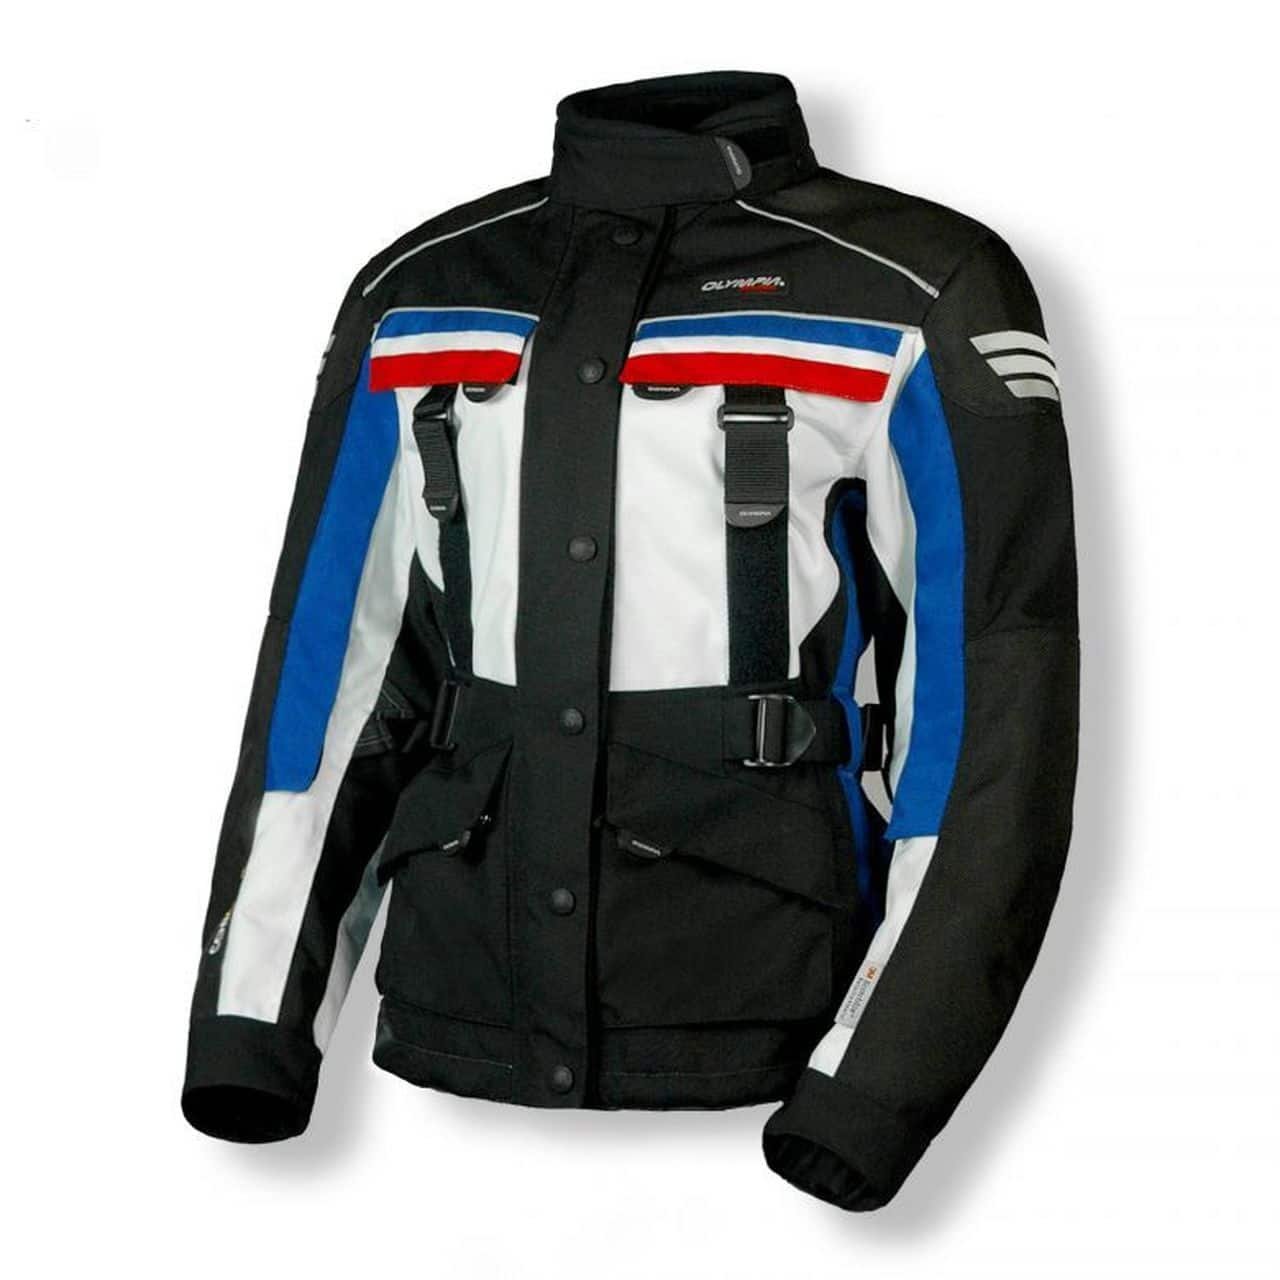 Woman's motorcycle jacket, deal of the day 2-8 $80 + $10 shipping Olympia Women's Ranger Vent Tech Jacket $90